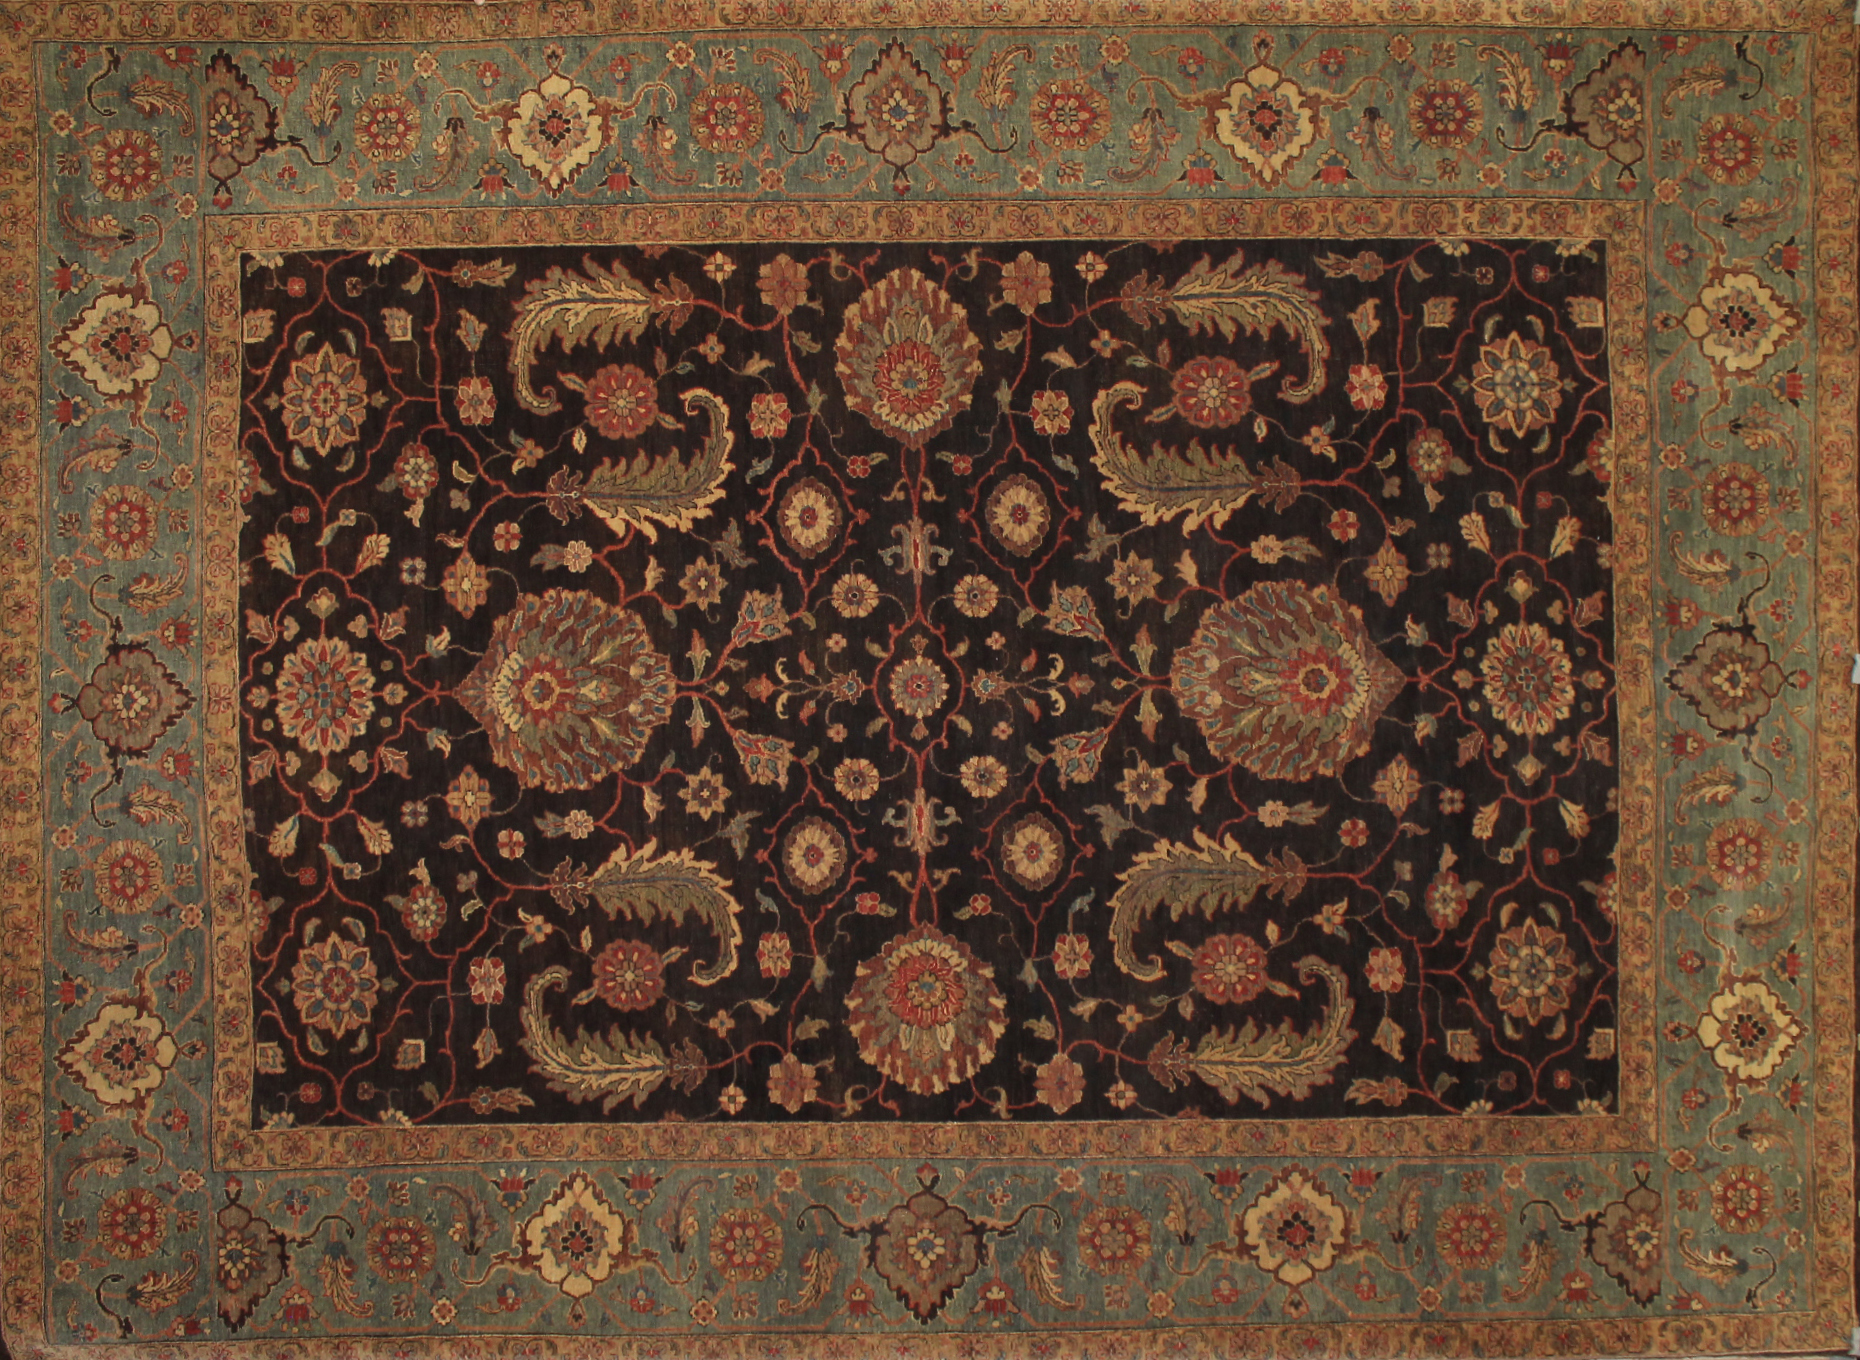 9x12 Antique Revival Hand Knotted Wool Area Rug - MR14307